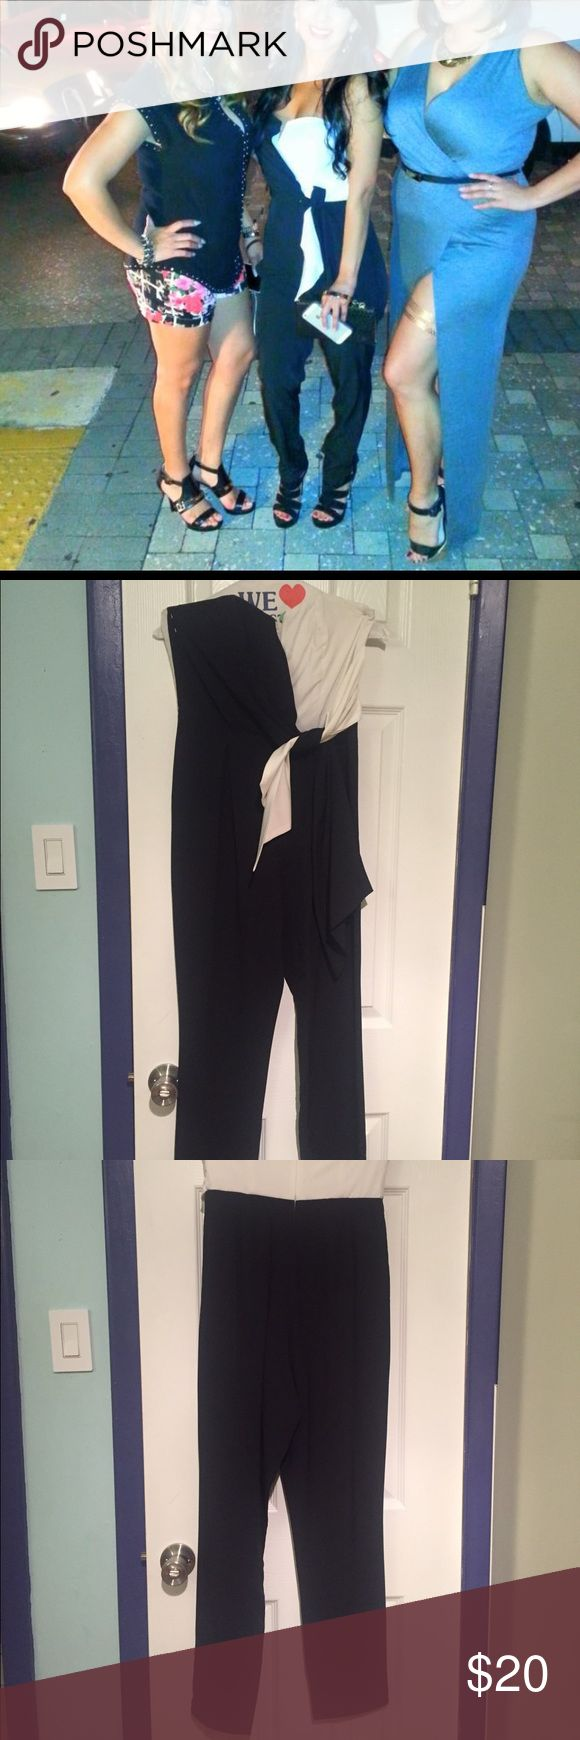 Black and white jumper outfit Black and white pant romper. Only worn once, shown in the middle picture. Perfect condition Pants Jumpsuits & Rompers